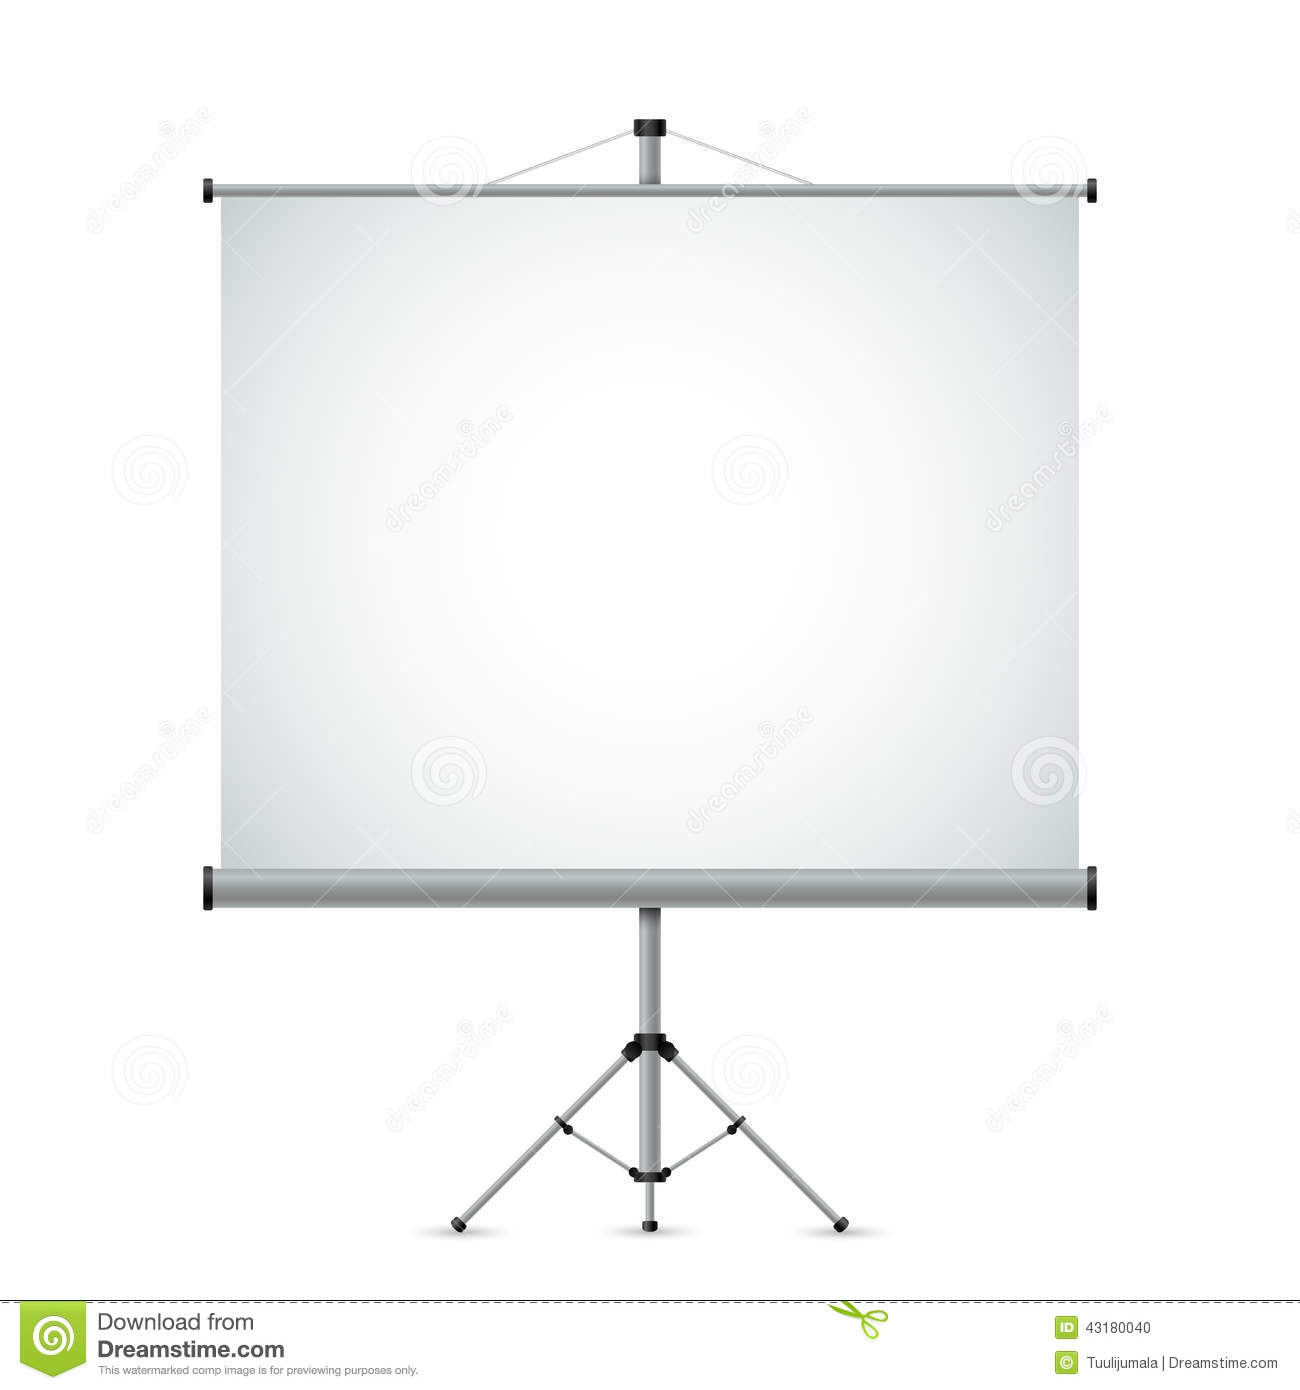 Projection Screen Stock Vector - Image: 43180040